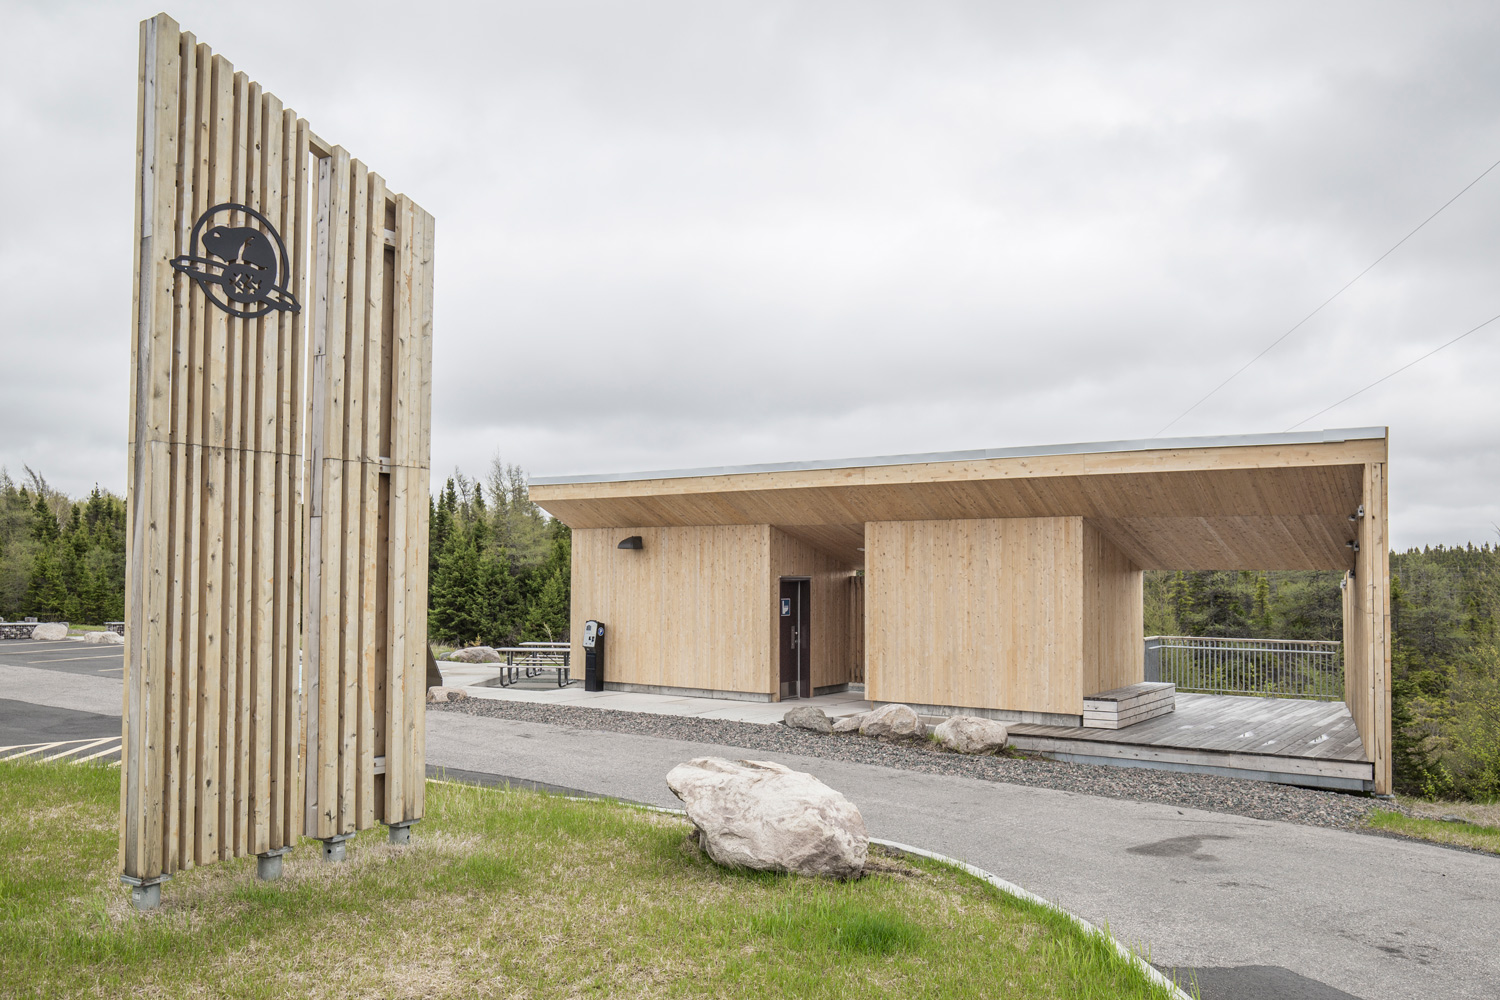 New visitor experience / washroom pavilions at the North and South ends of Terra Nova National Park provide information, orientation, and interpretive experiences.